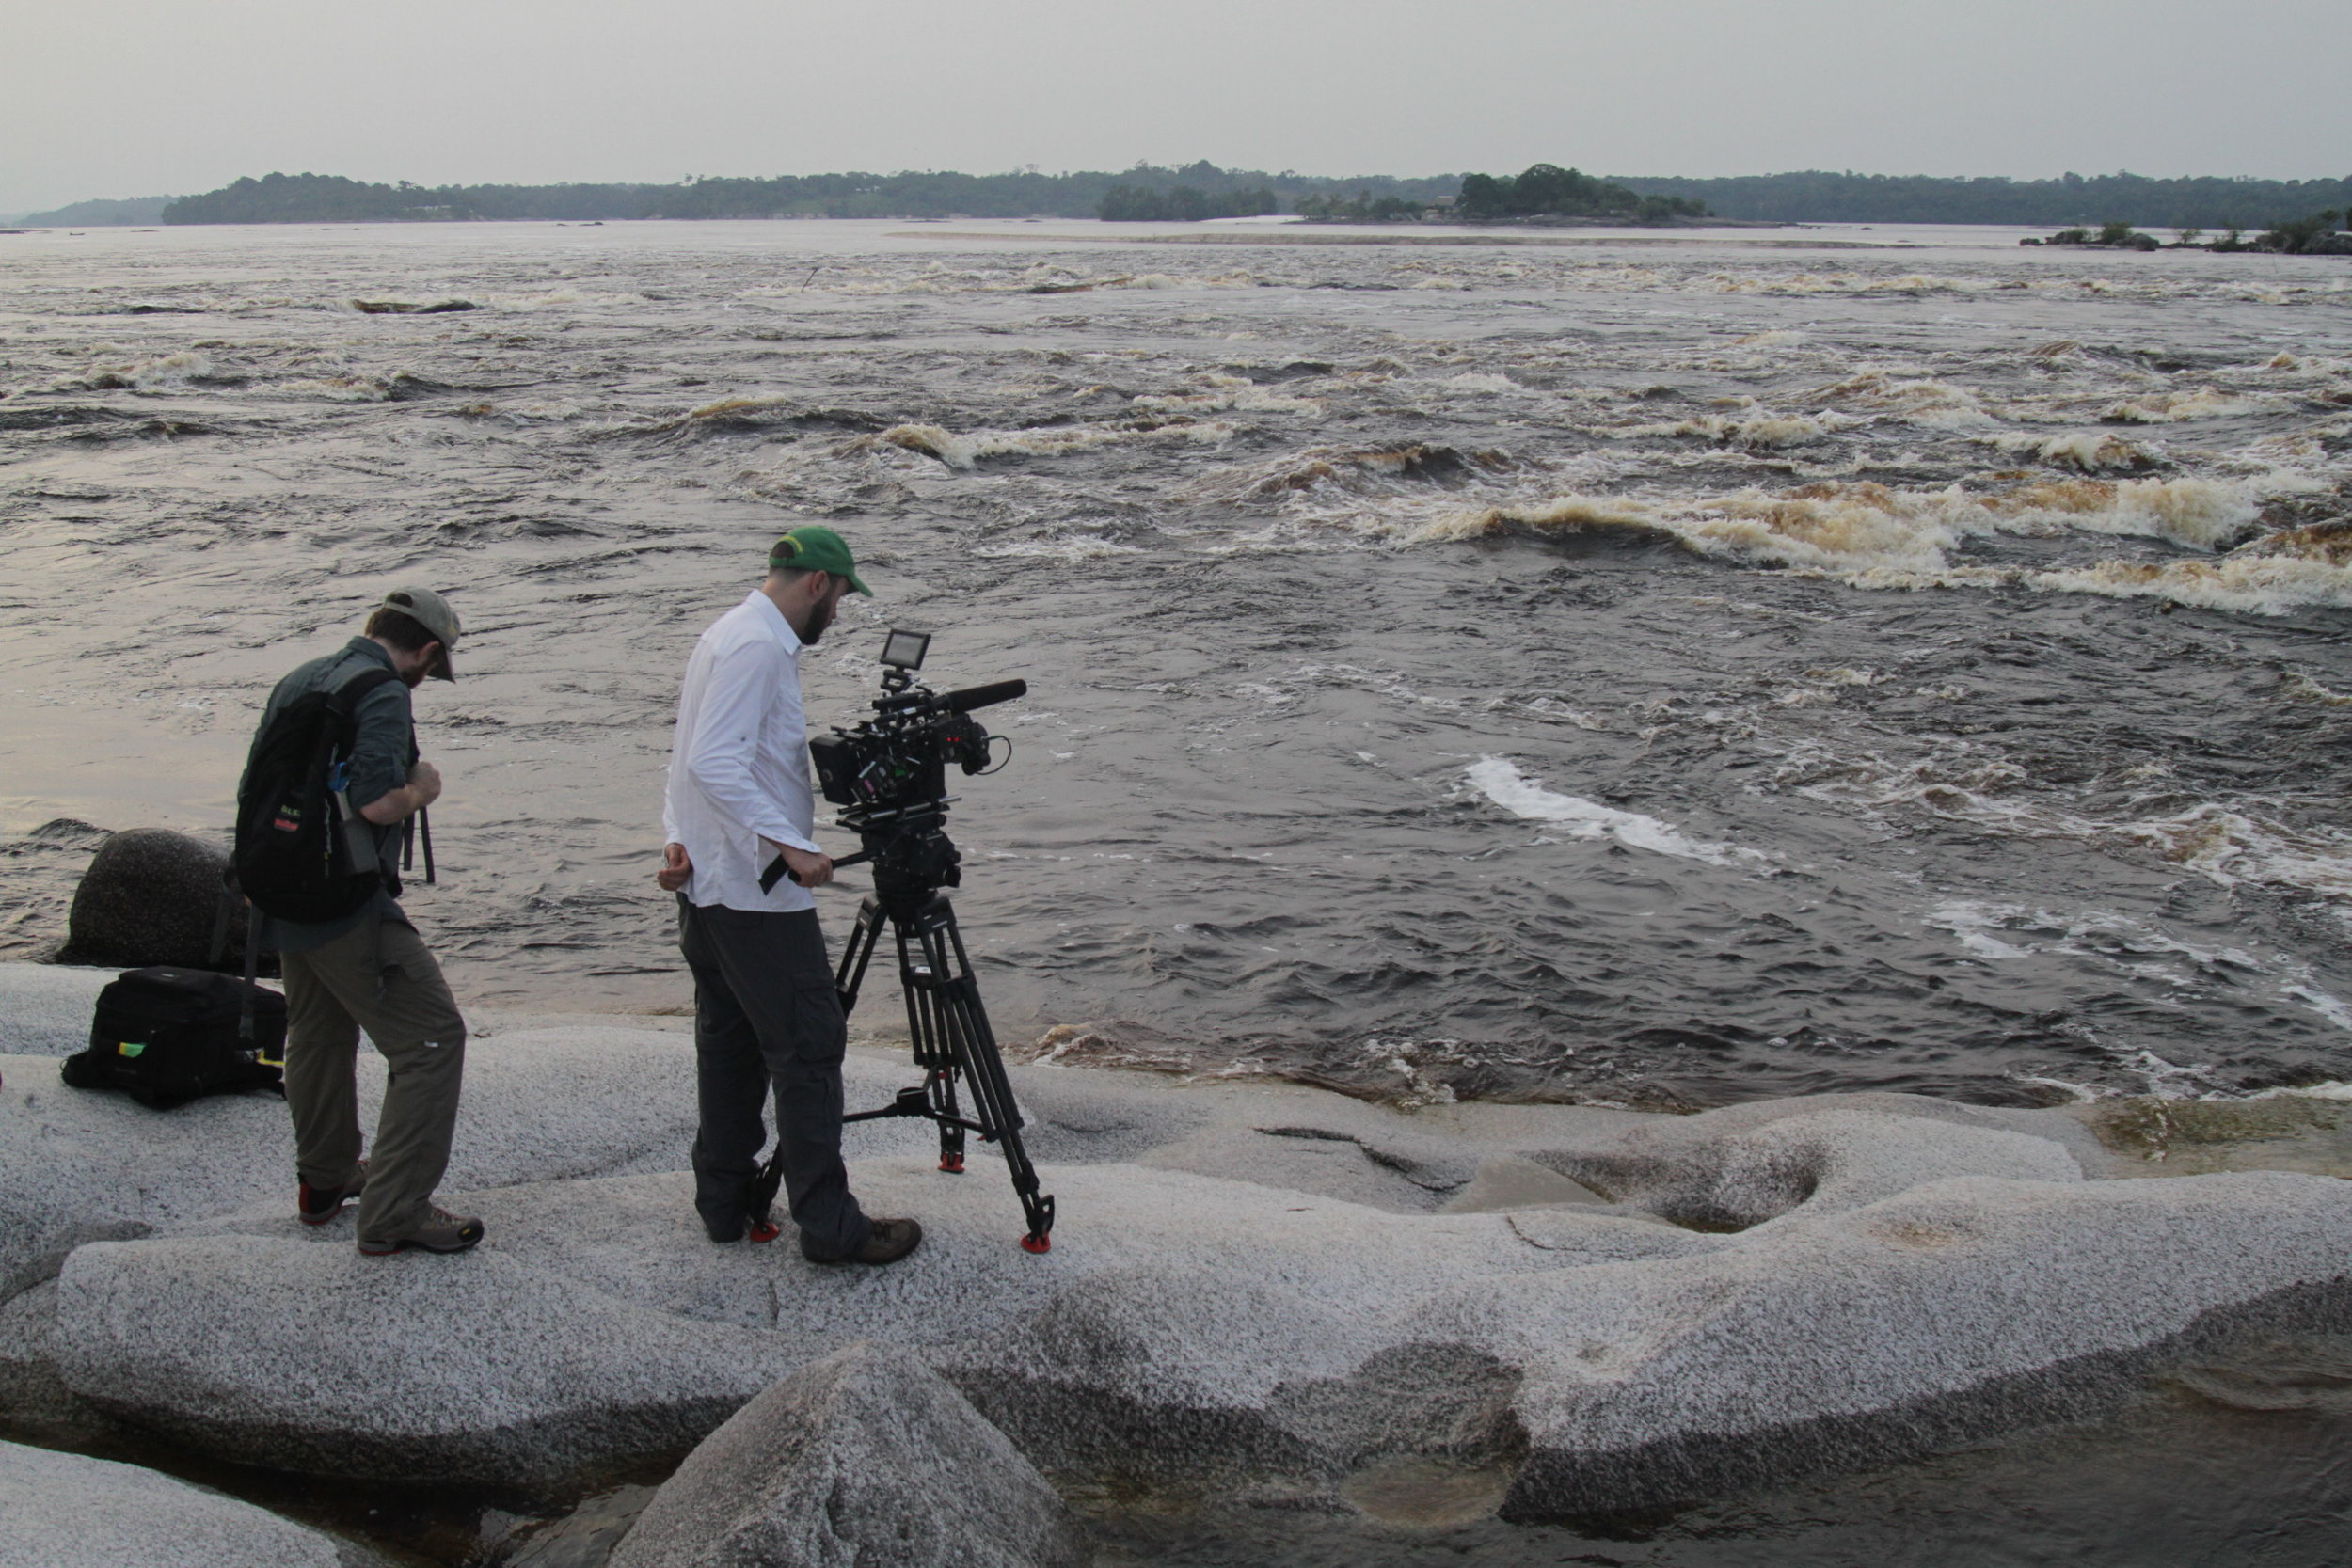 Camera crew getting the shot in São Gabriel Cachoeira, Amazonas state, Brazil